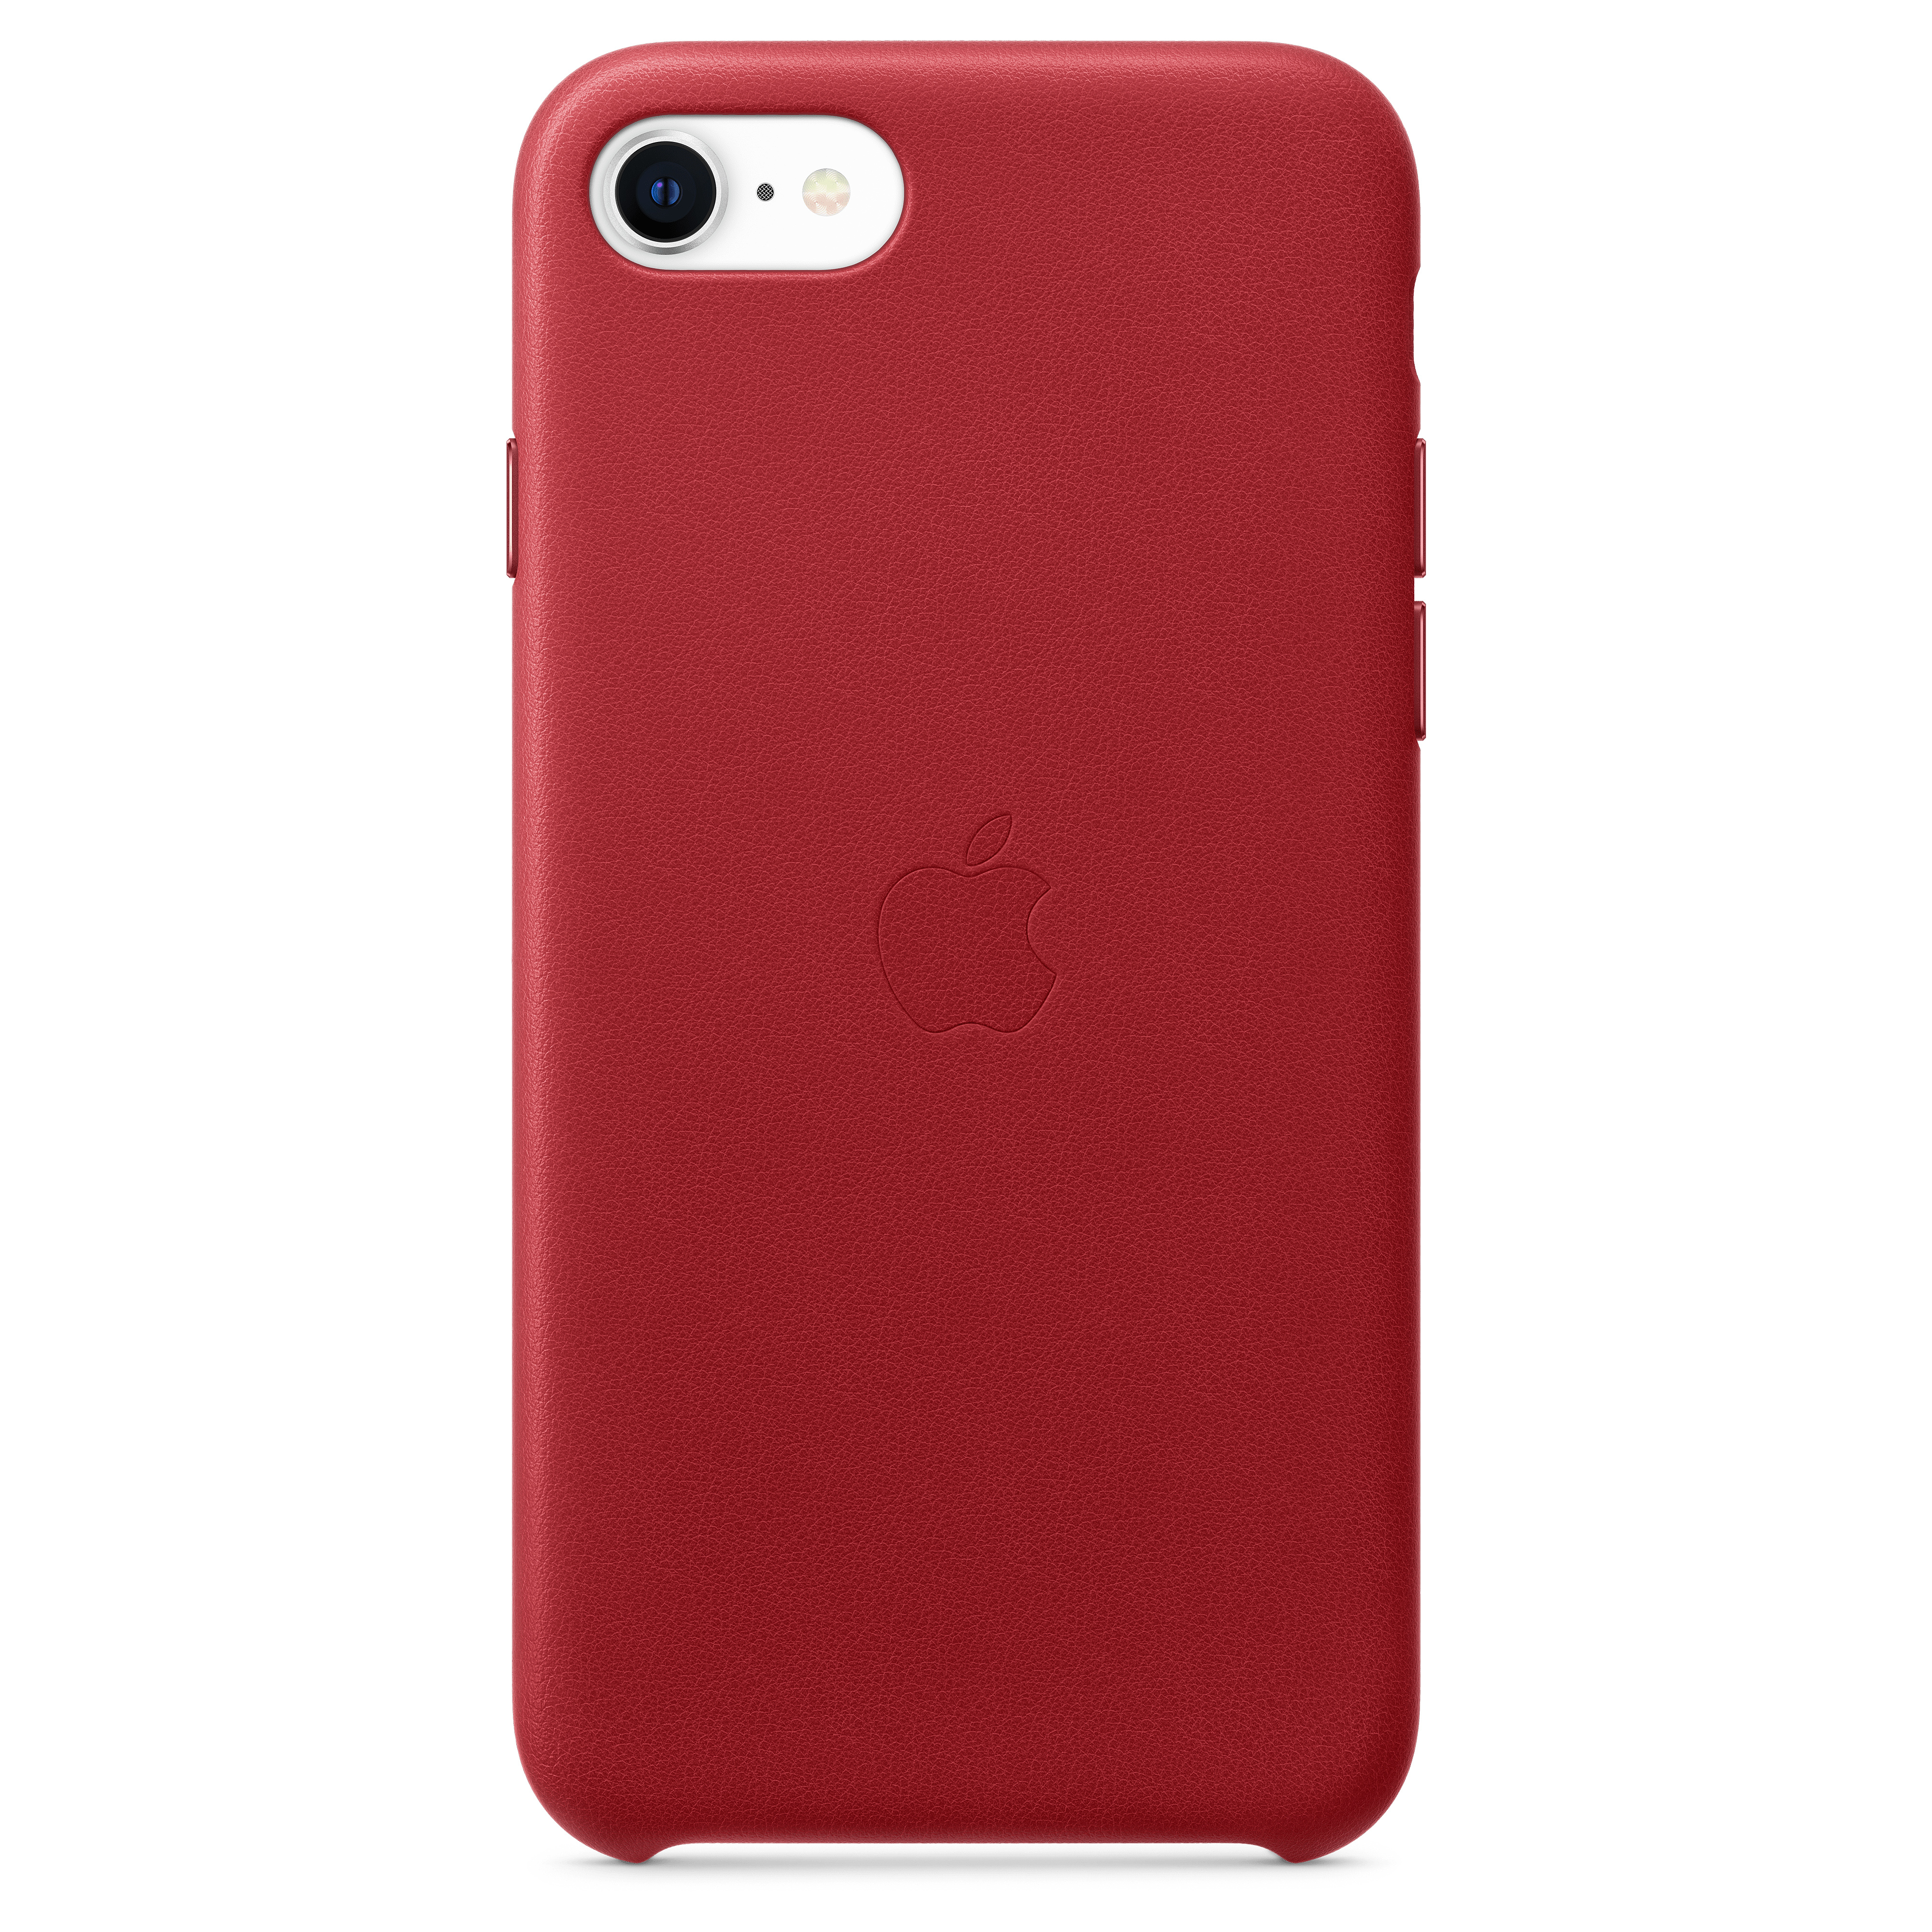 Apple - iPhone SE 2020 Leather Case - Red